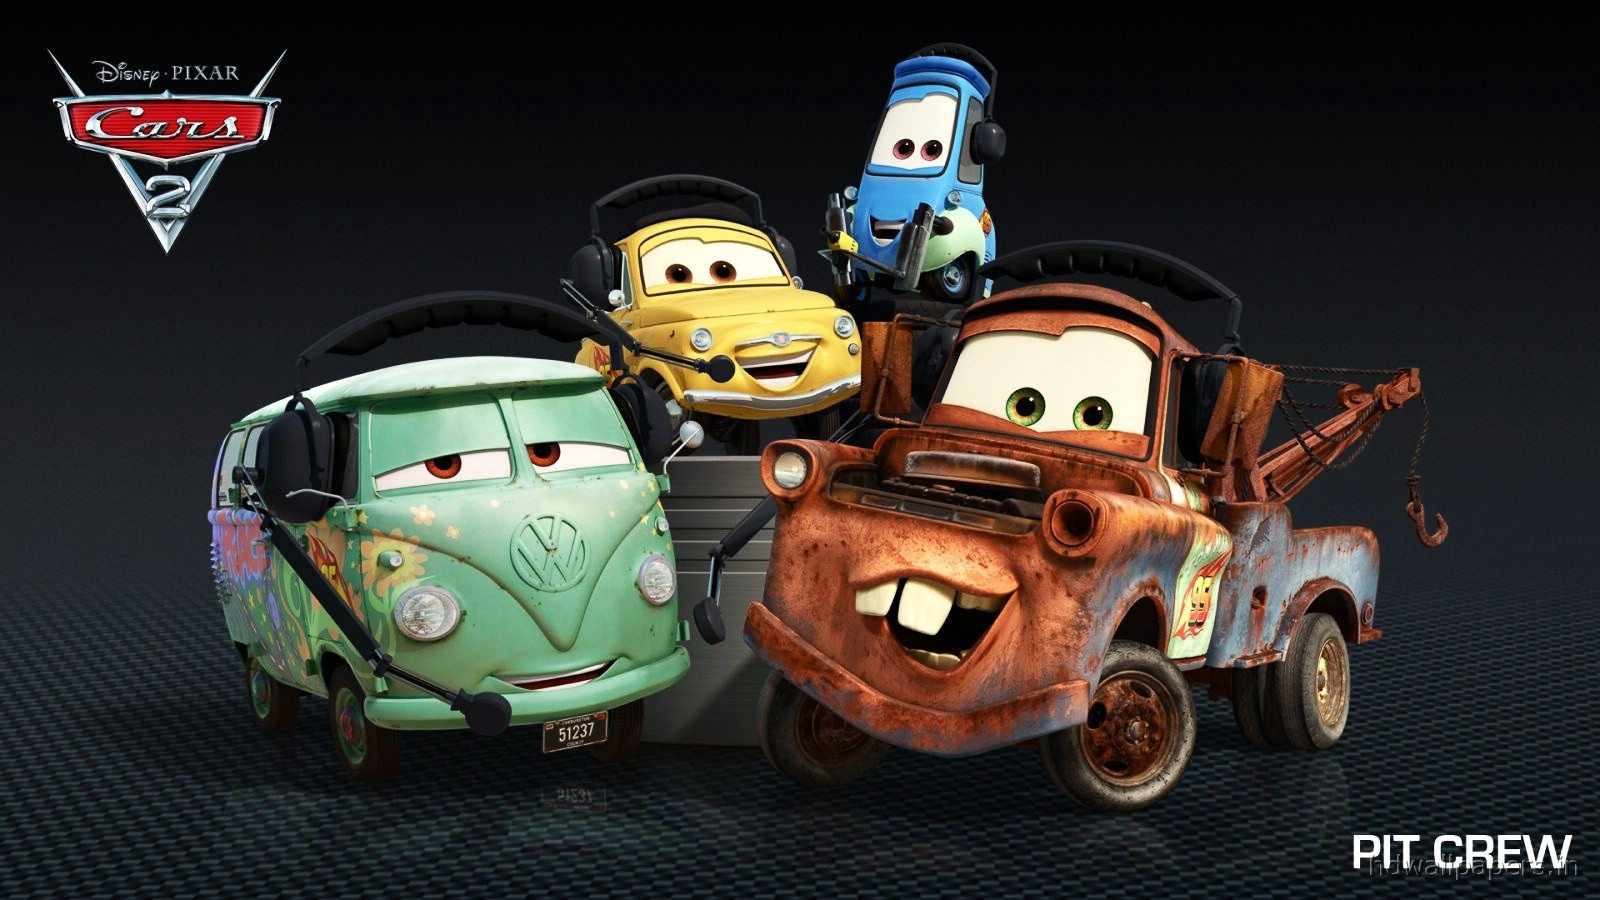 Pixar Cars S Hd Car 351220 Wallpaper Wallpaper